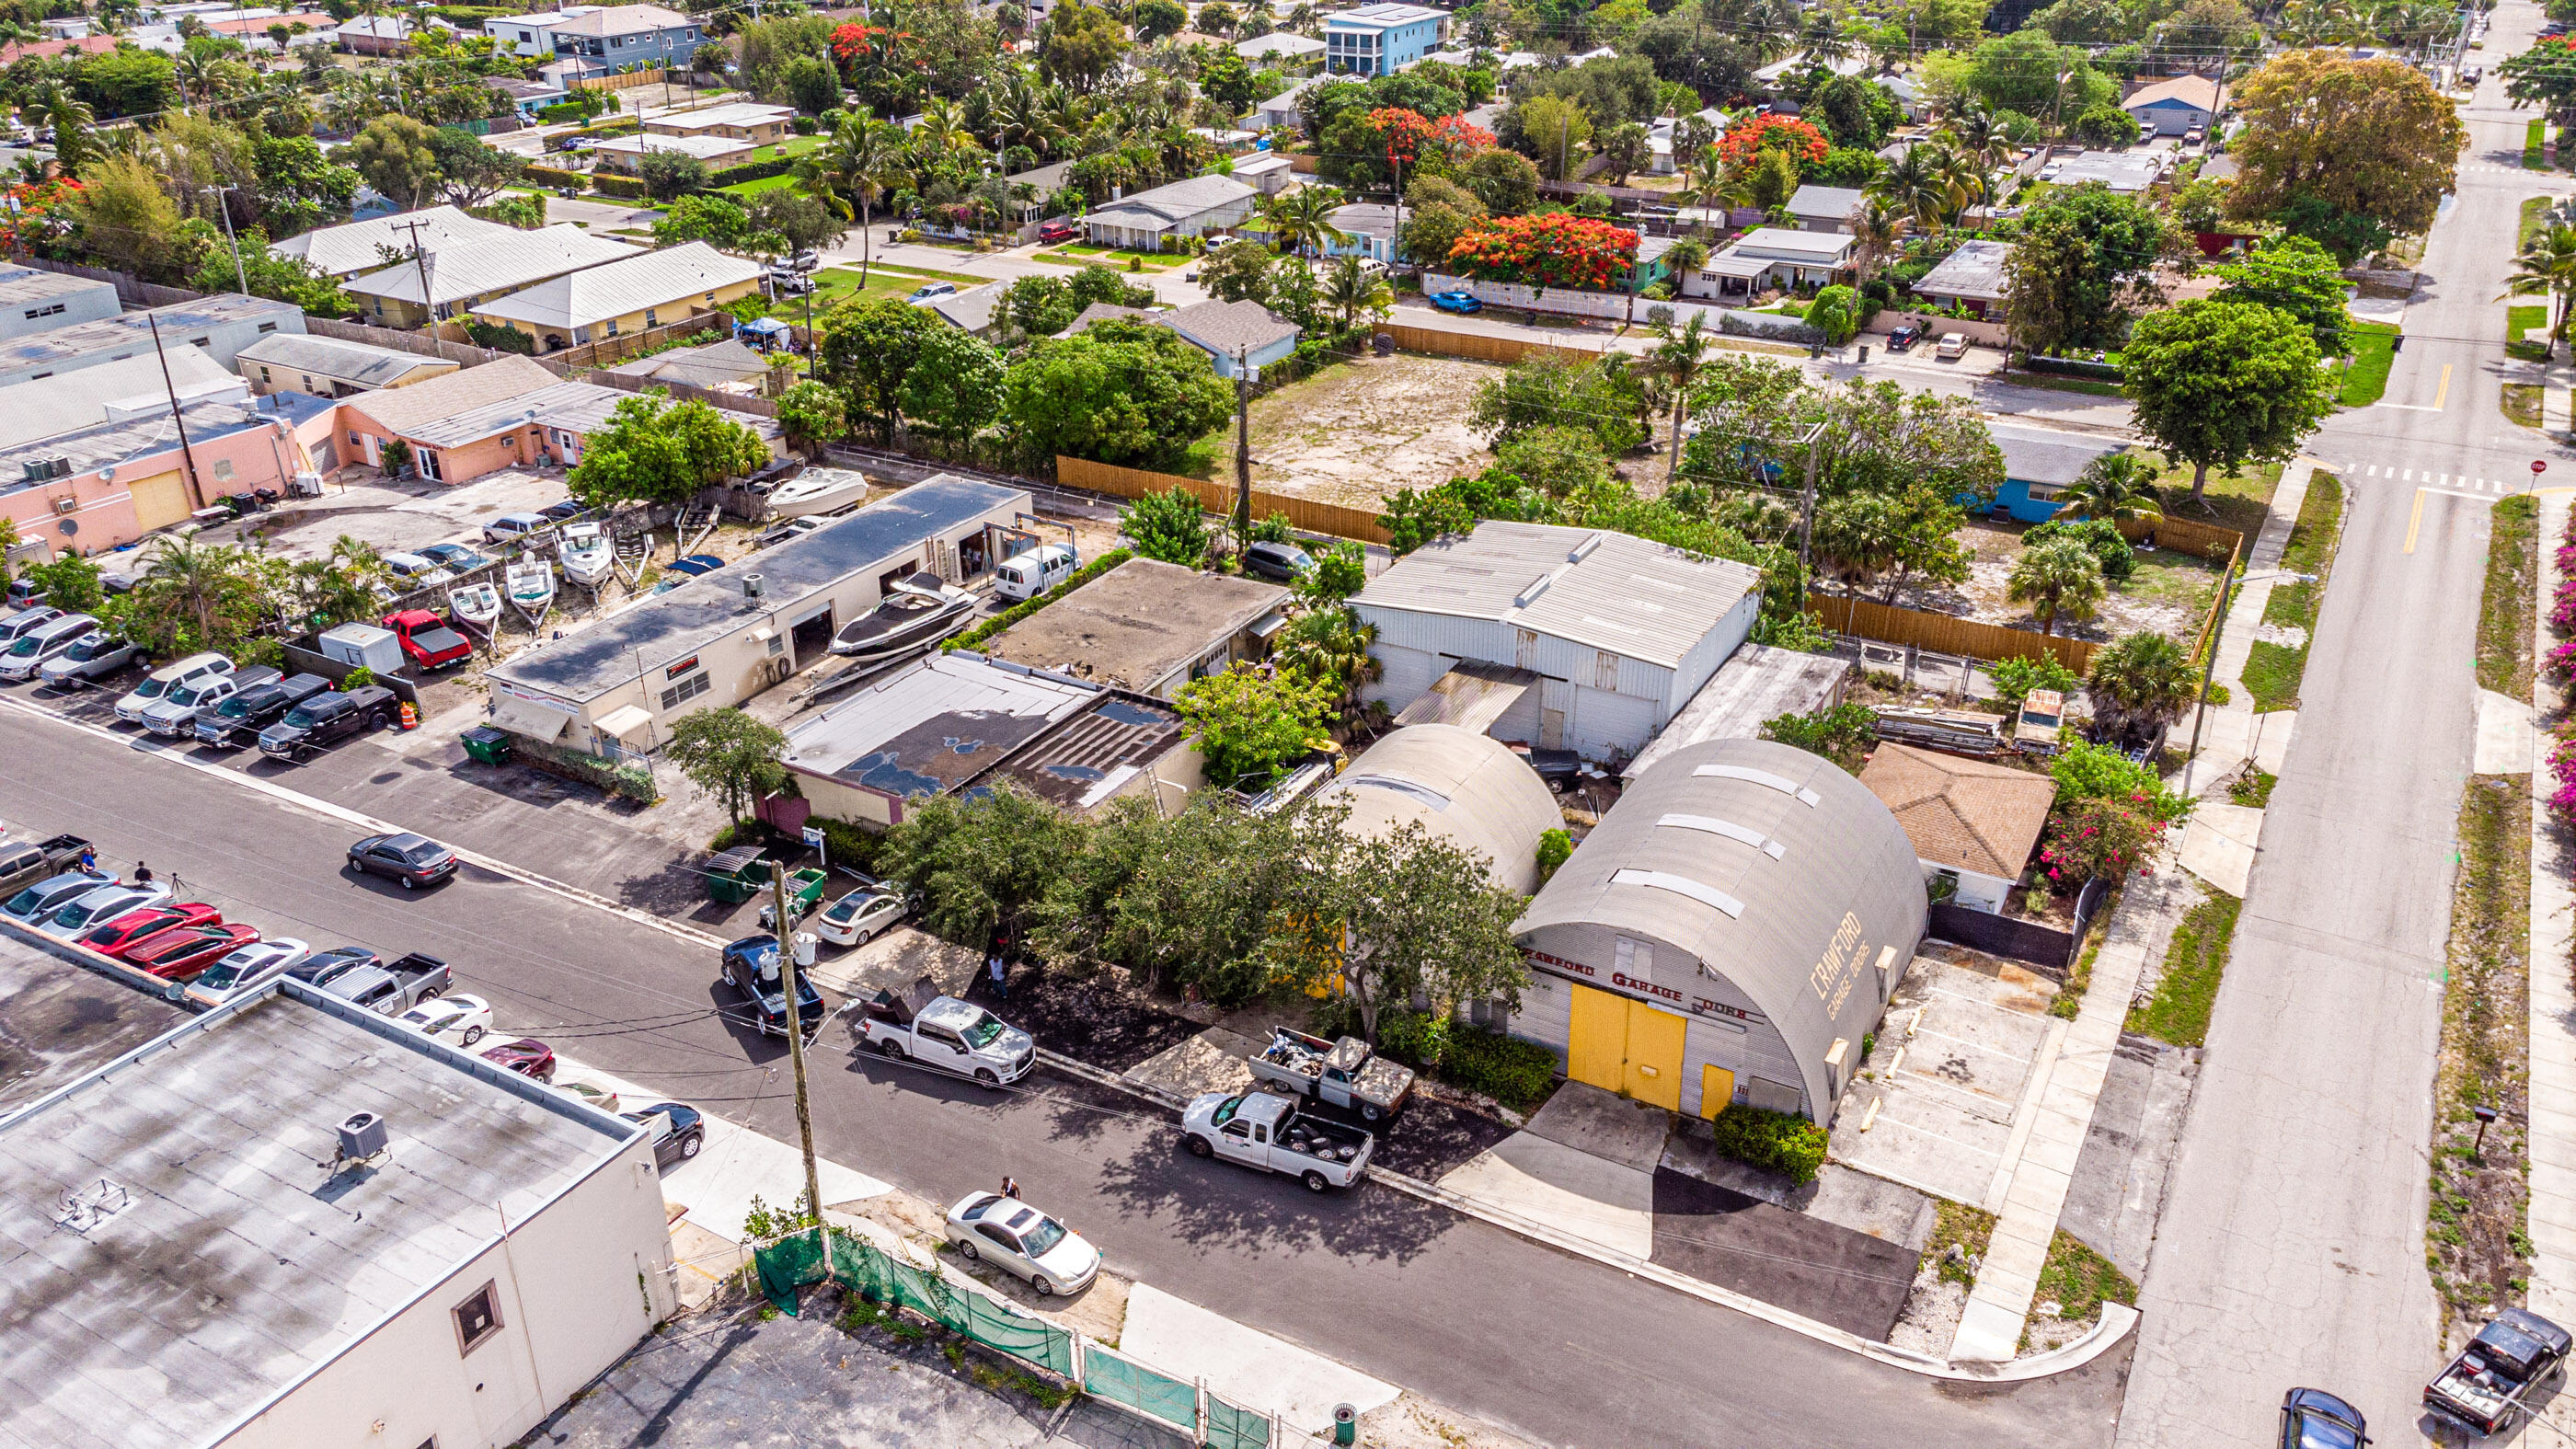 369-391 2nd Avenue, Delray Beach, Florida 33483, ,3 BathroomsBathrooms,Commercial Industrial,For Sale,2nd,RX-10726141